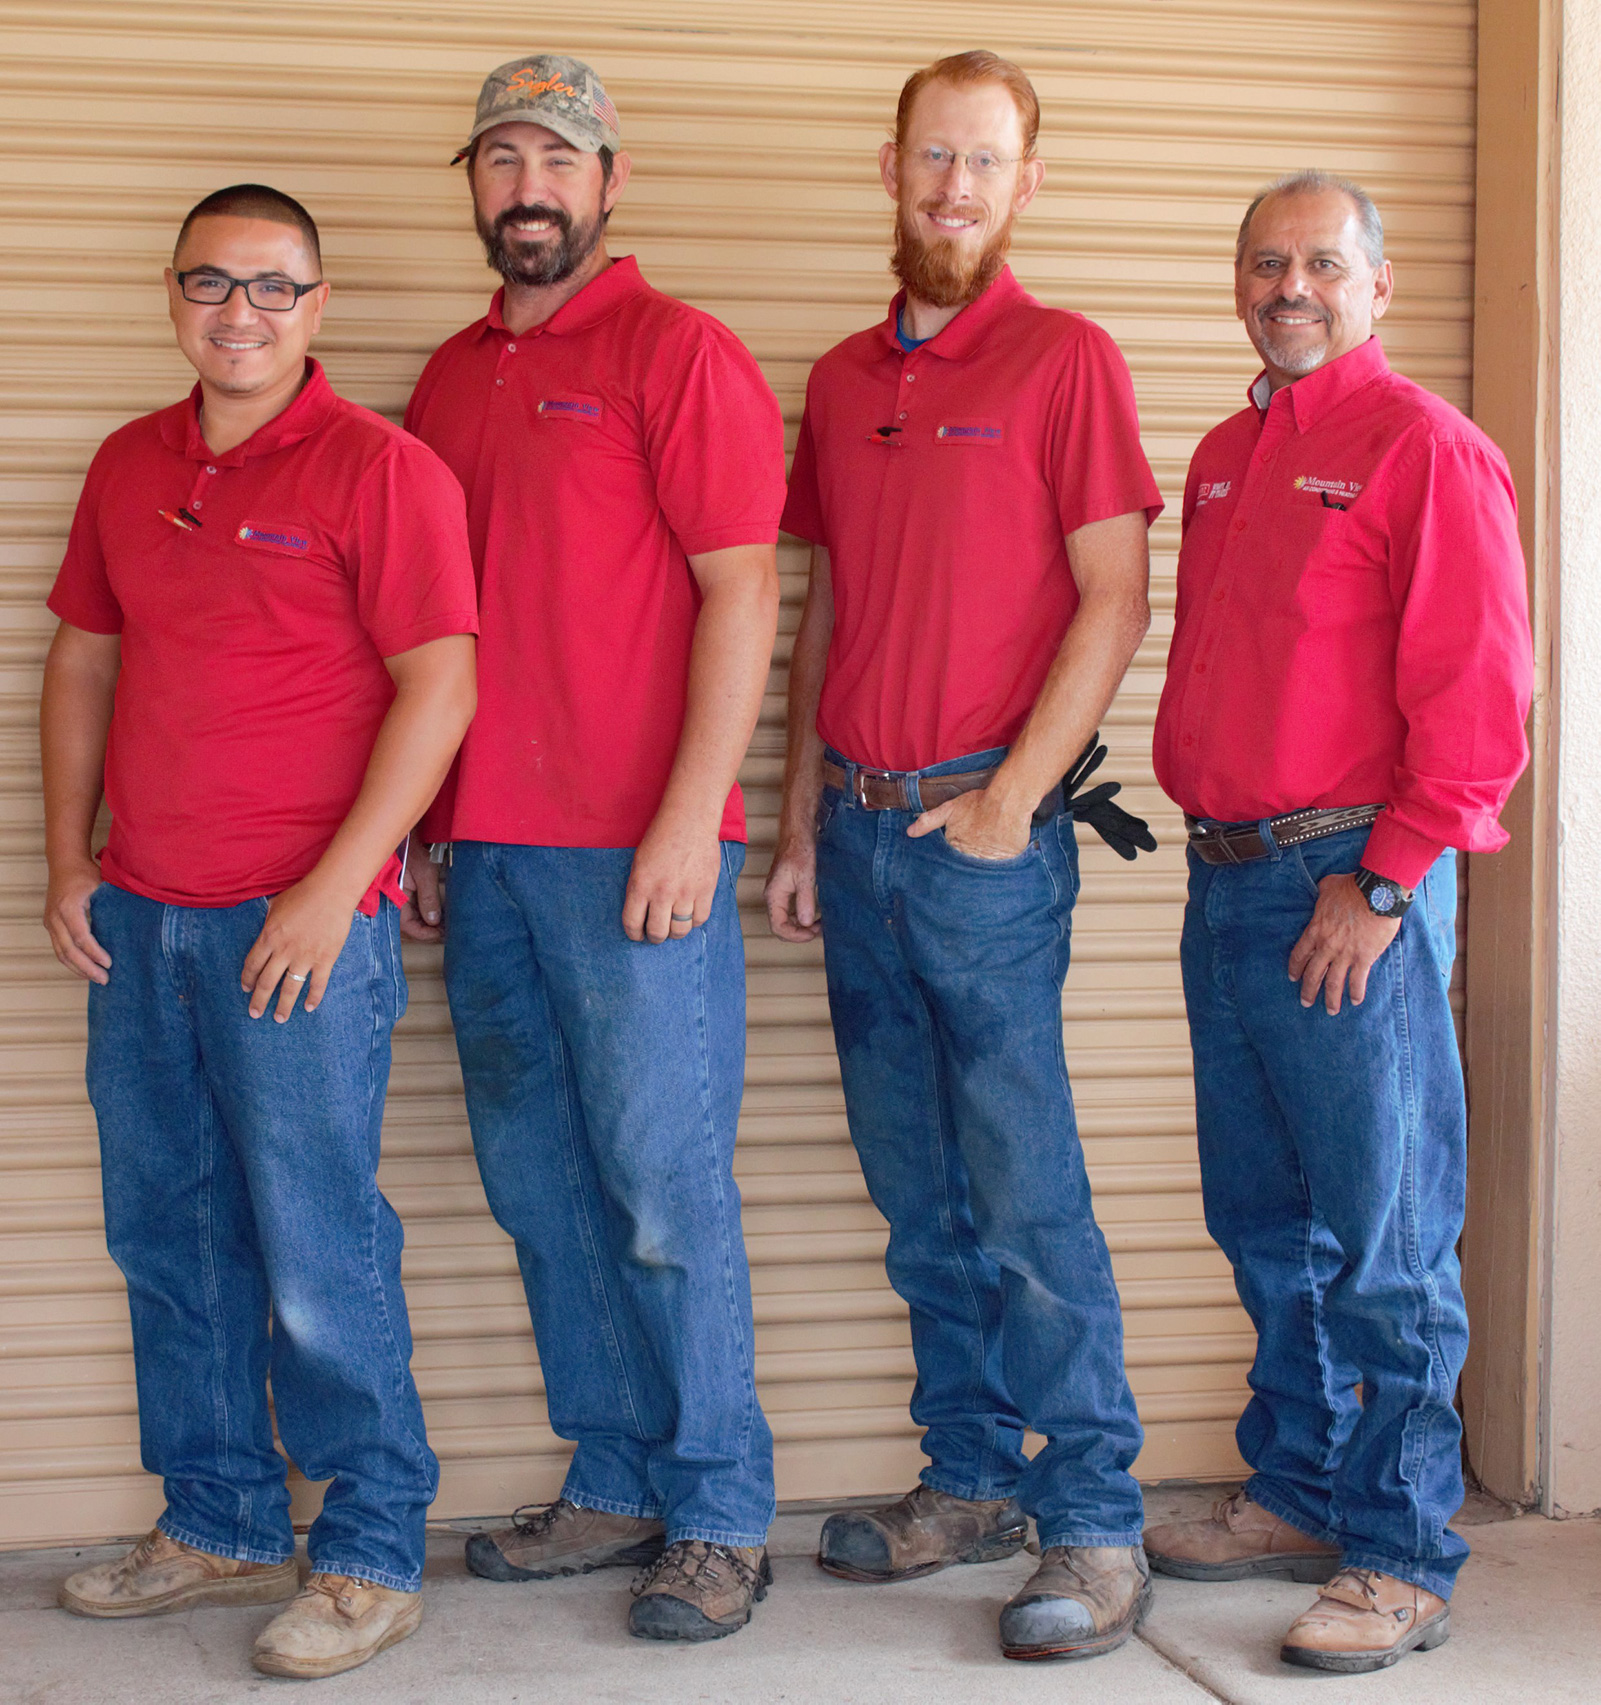 Service Department Group Photo